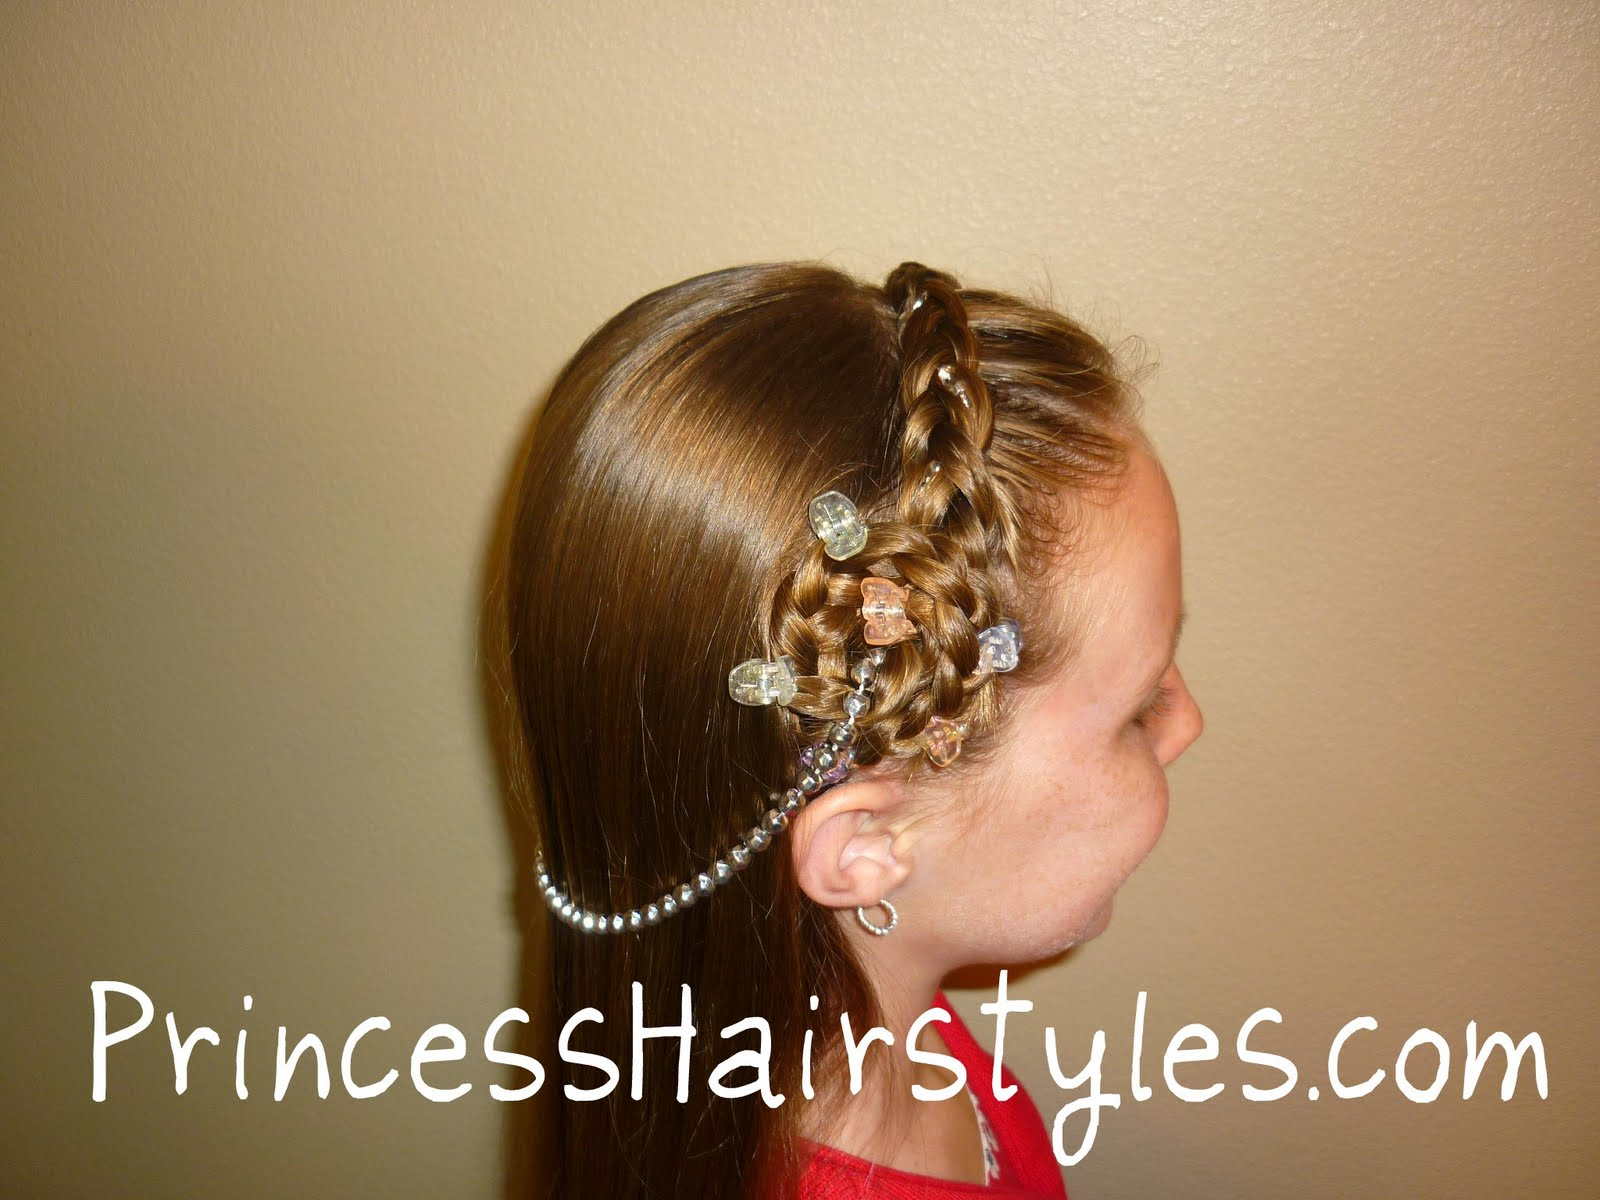 Halloween Hairstyles Princess Braided Headband With Jewels